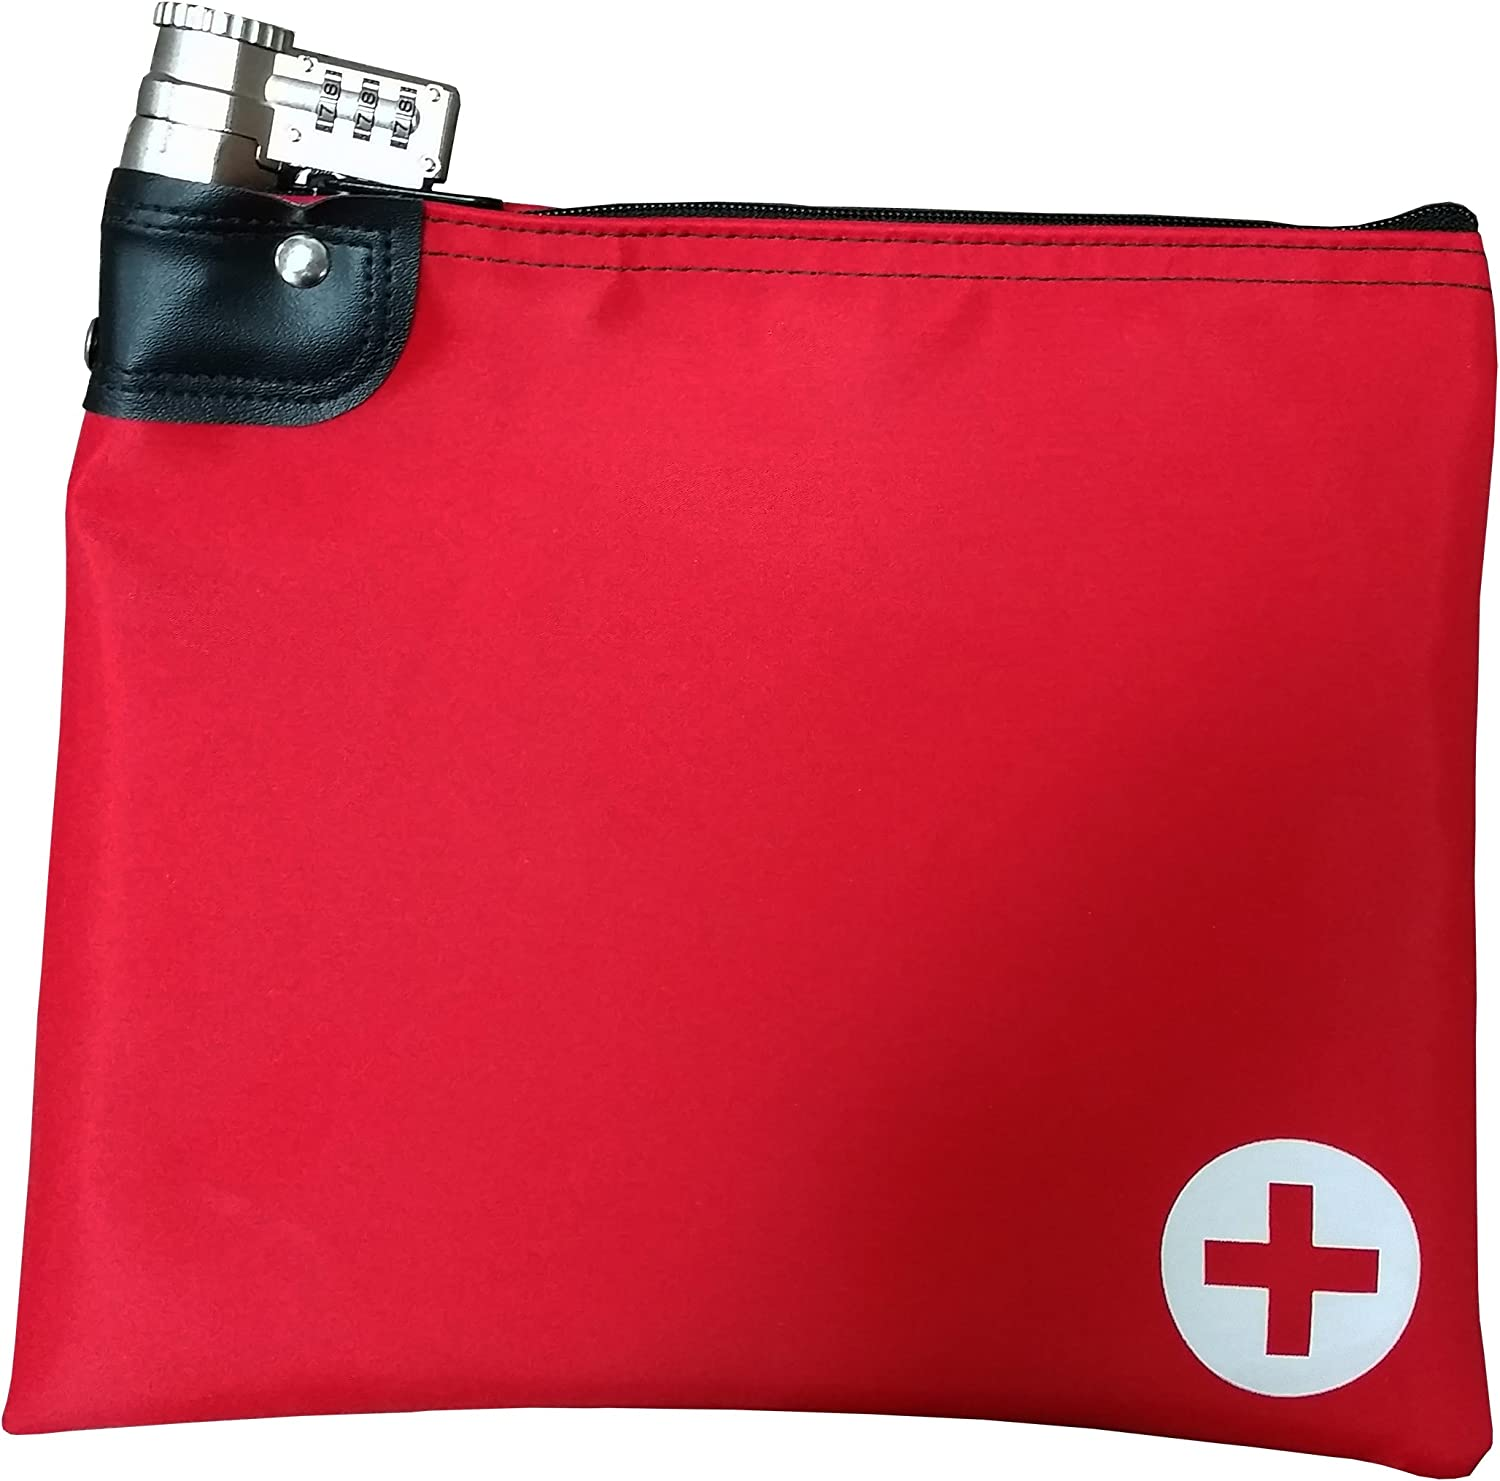 Medication Safety Bag Combination Keyed Lock (Red)